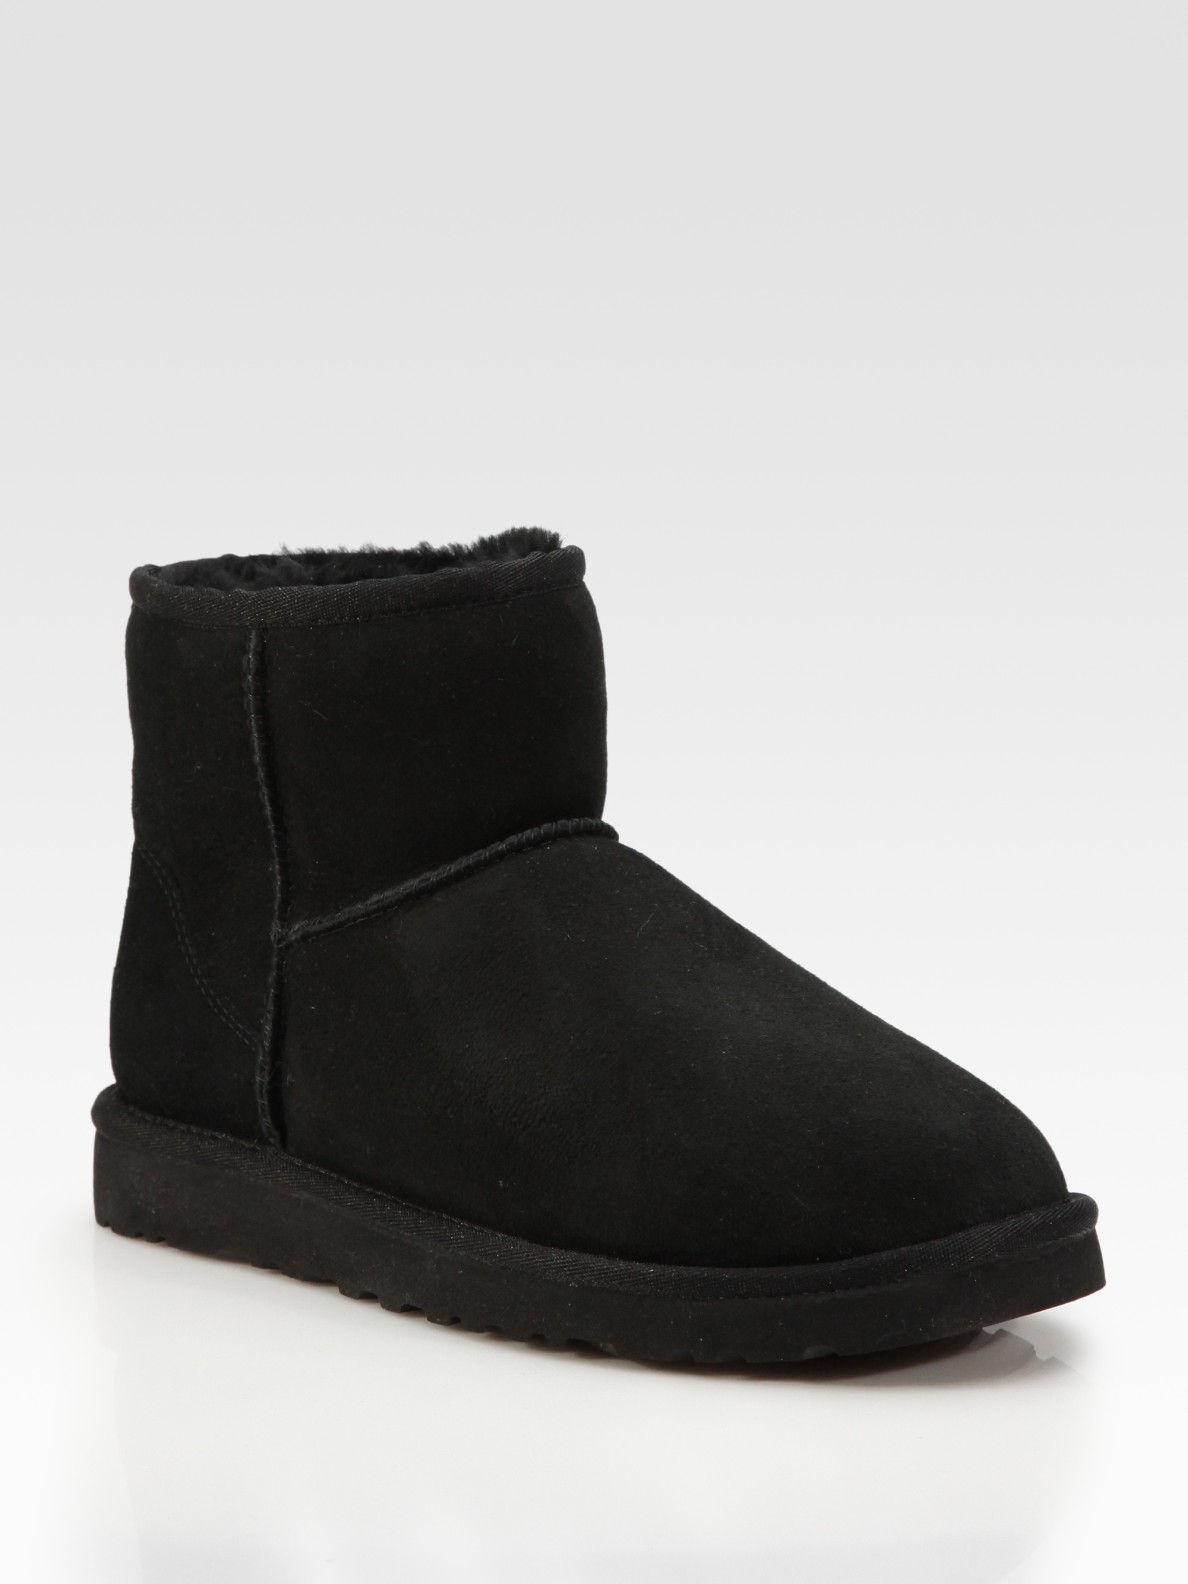 ugg classic mini suede shearling boots in black lyst. Black Bedroom Furniture Sets. Home Design Ideas